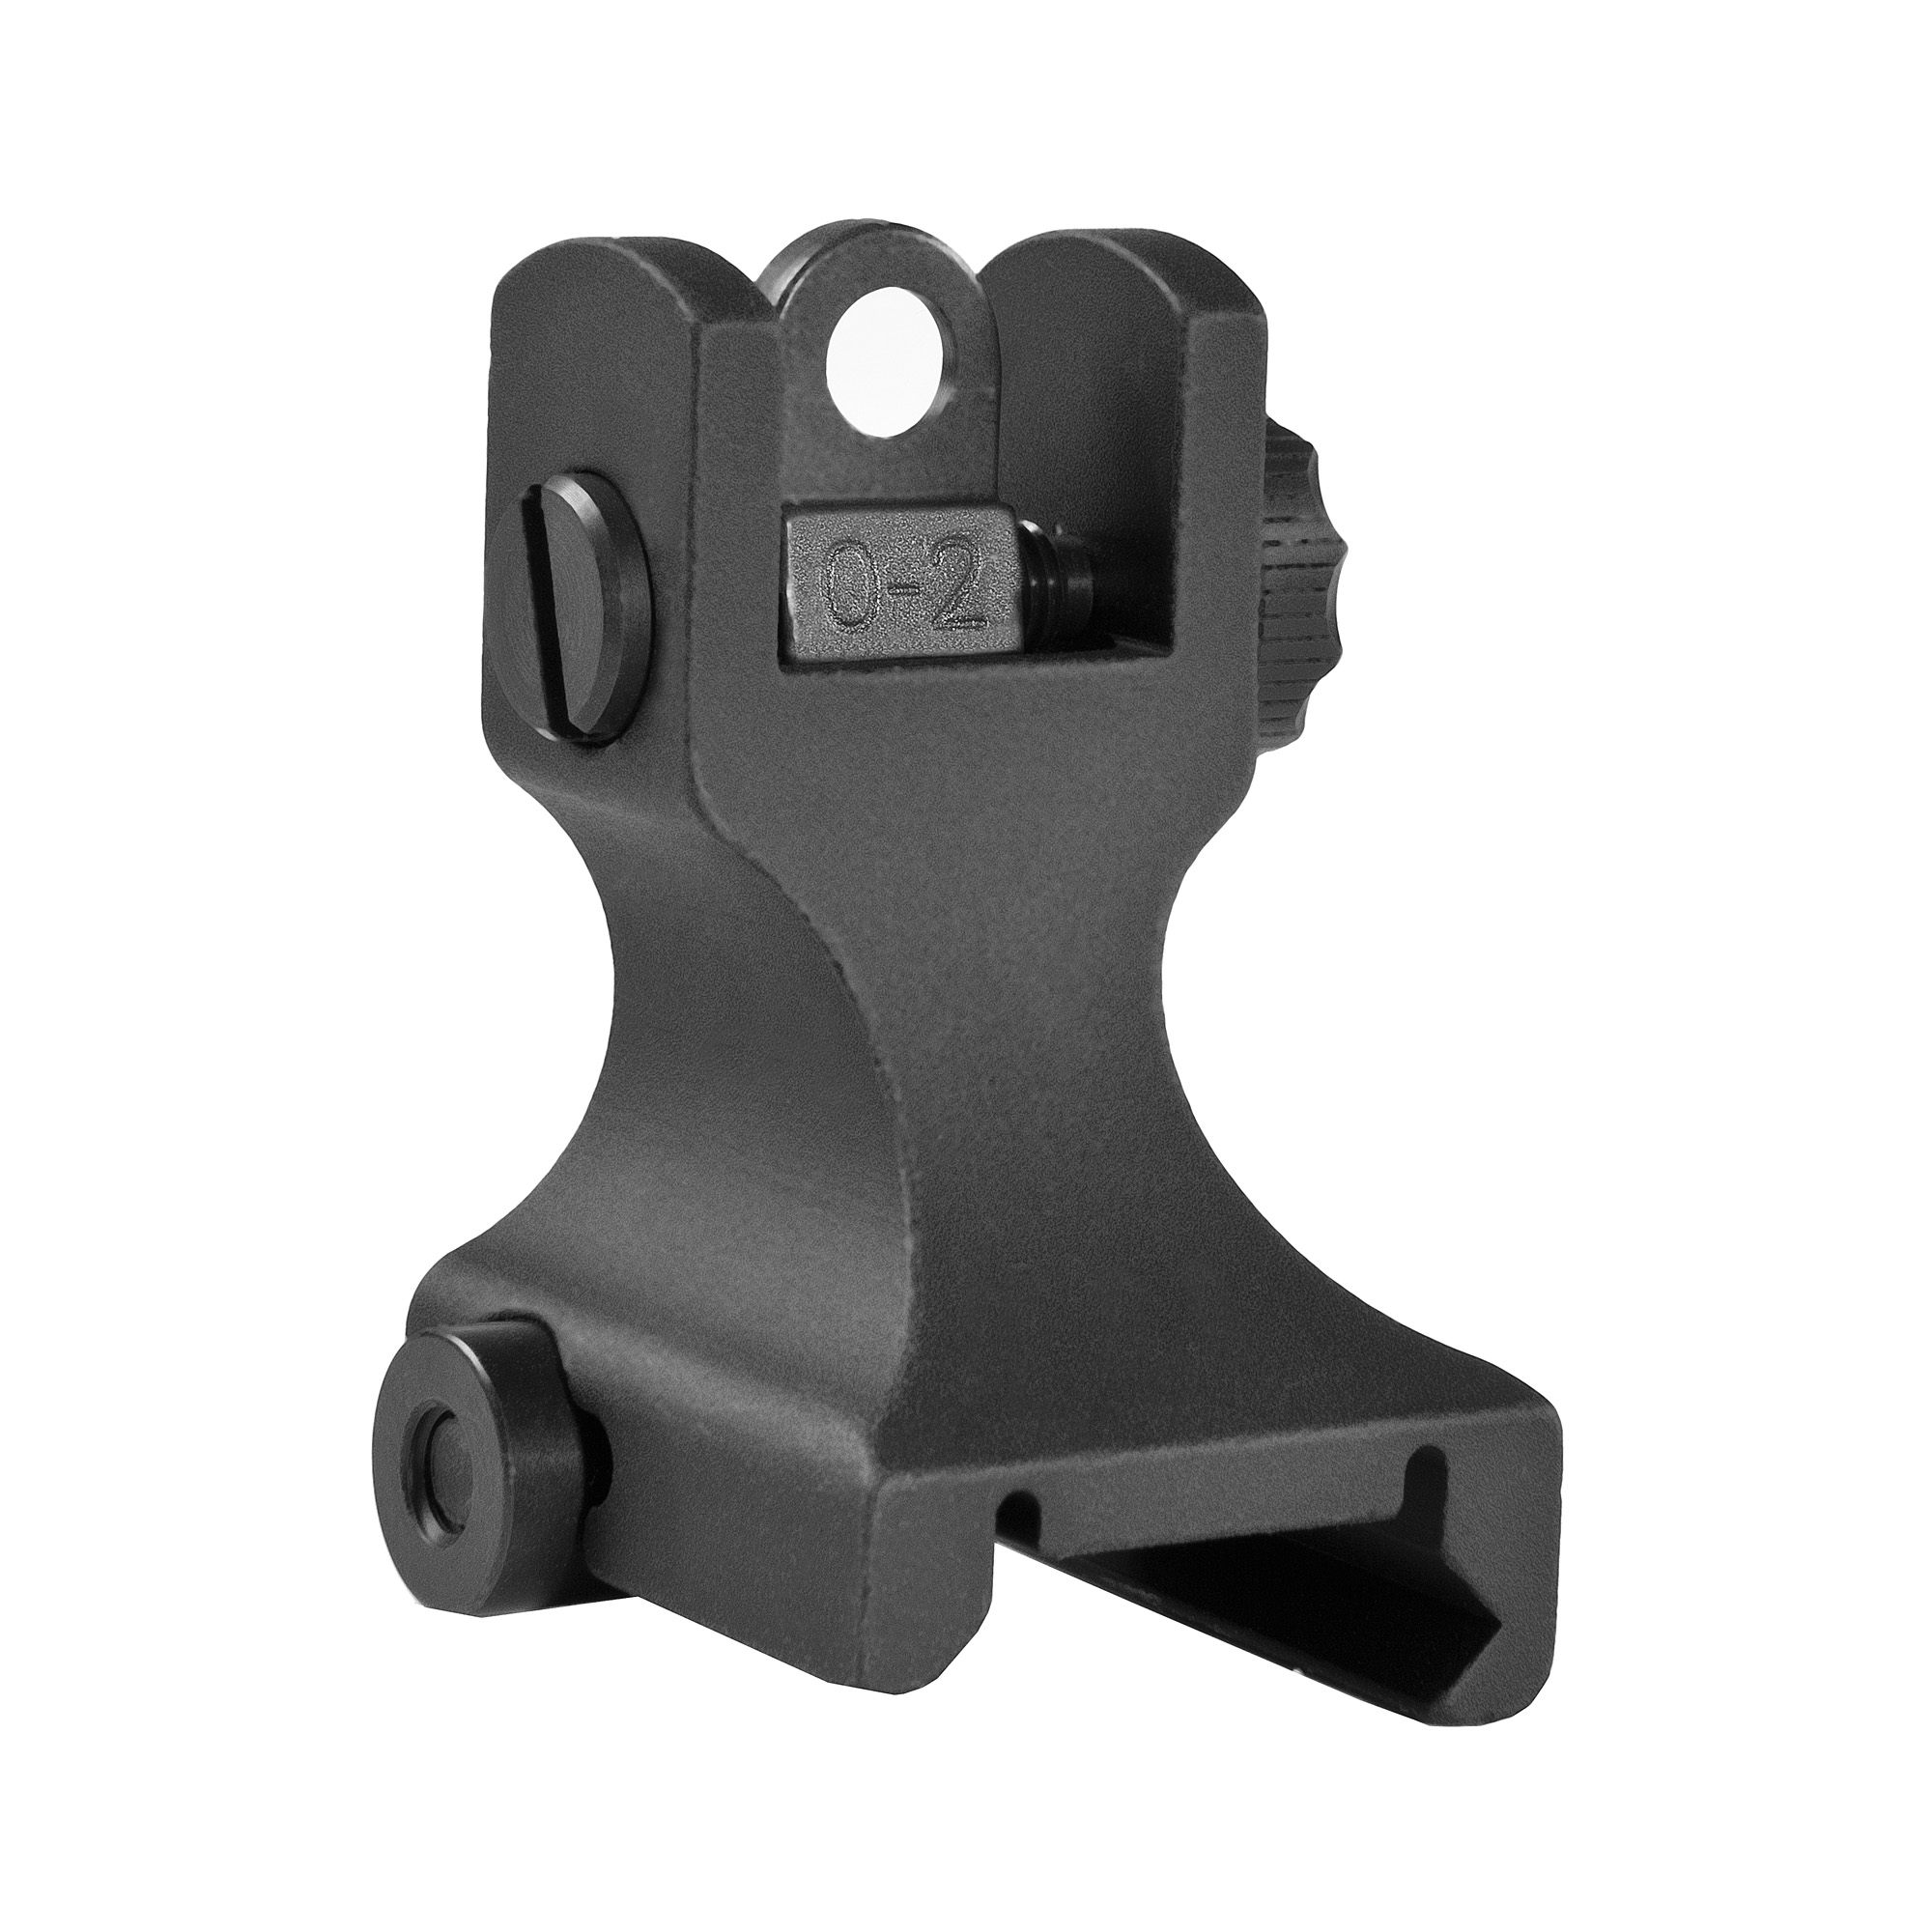 Samson fixed sights are the most robust fixed combat sights on the market. Accepts all aftermarket rear aperture replacements with Mil-spec dimensions. It is not intended for lower height gas block rails. The durable construction and solid mounting system guarantees you to stay on zero.